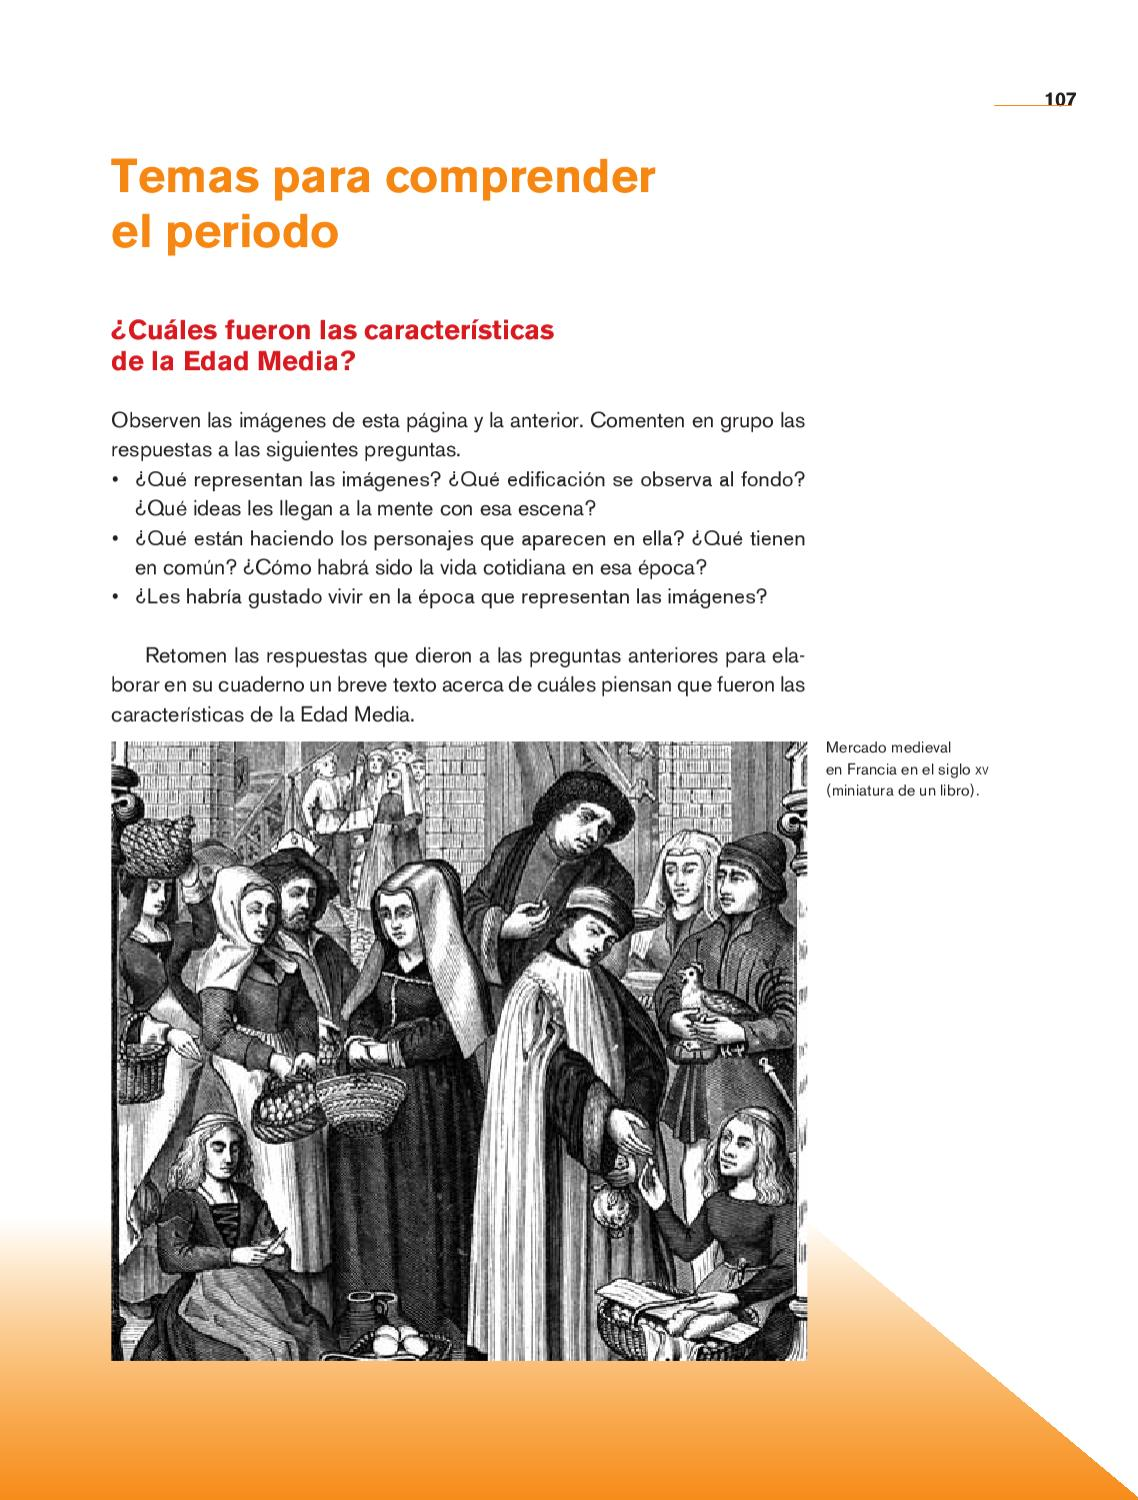 Historia 6to. Grado by Rarámuri - Issuu